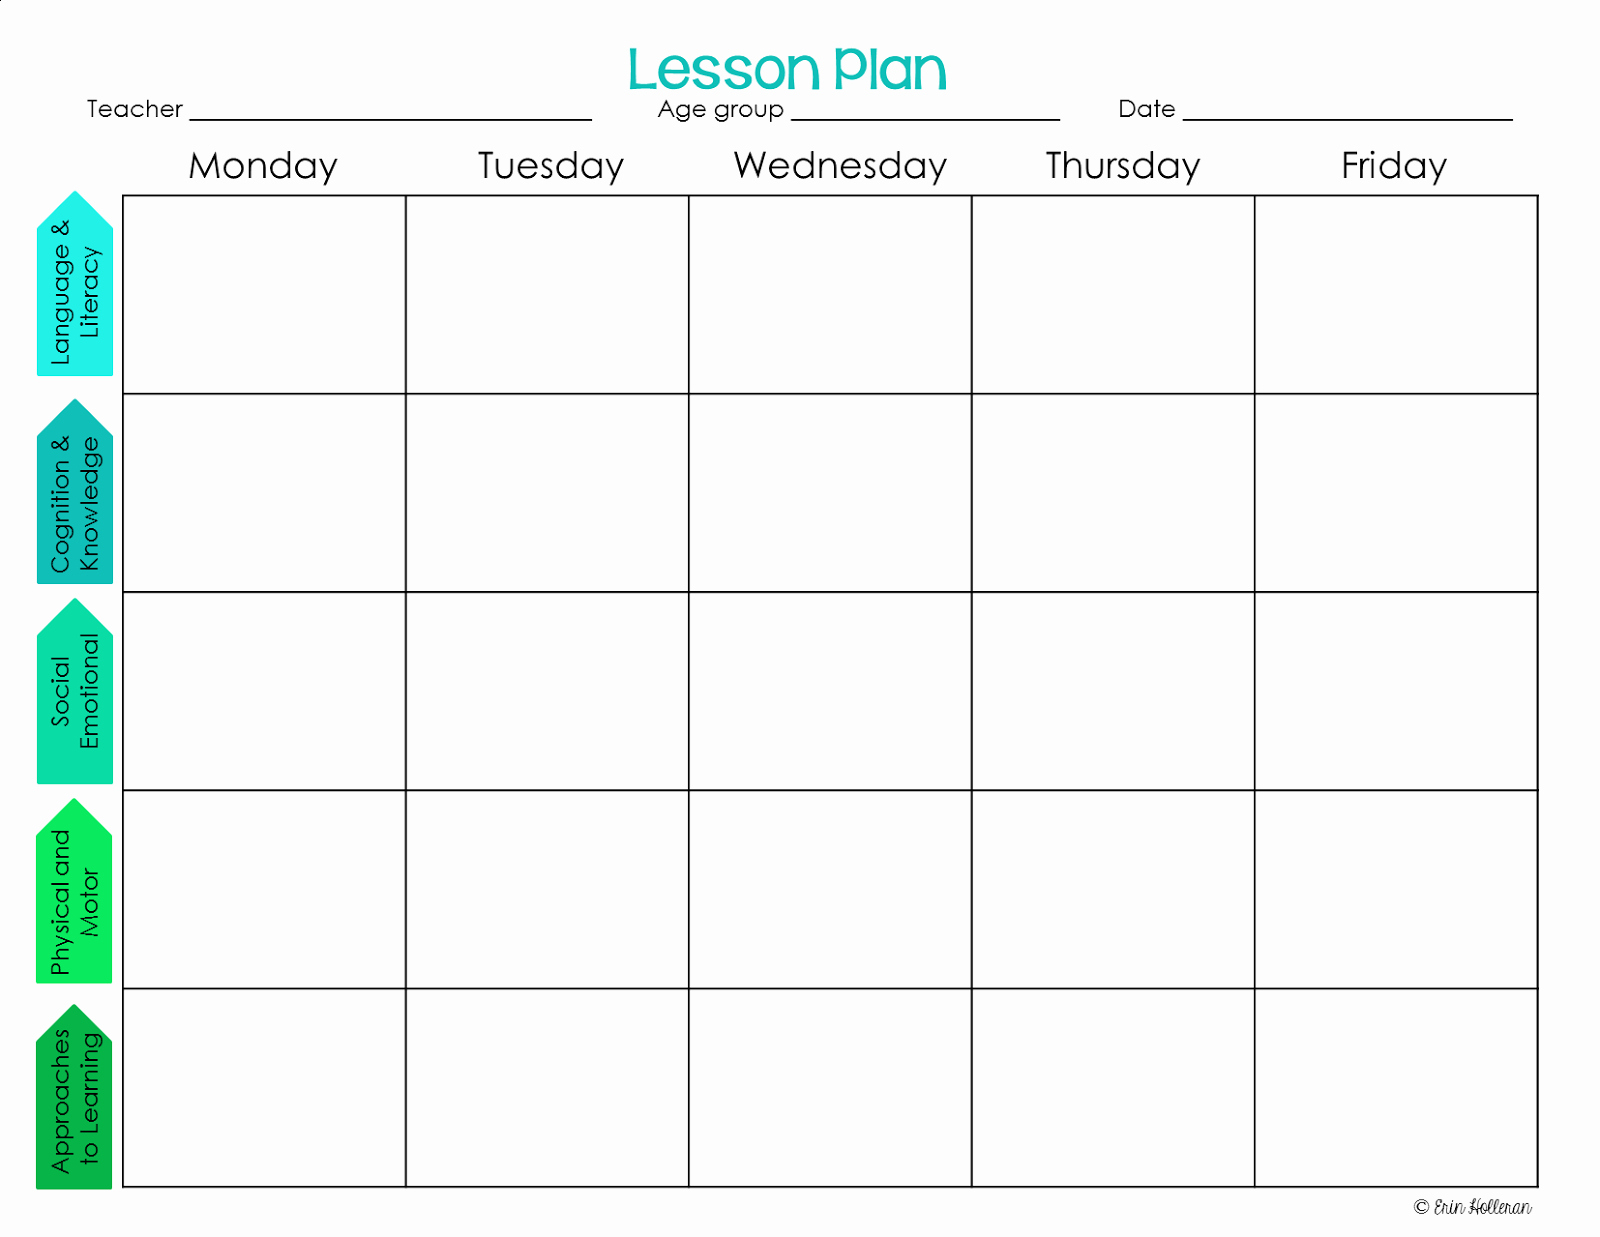 Weekly Lesson Plan Blank Template   Example Calendar Printable throughout Lesson Calendar Template